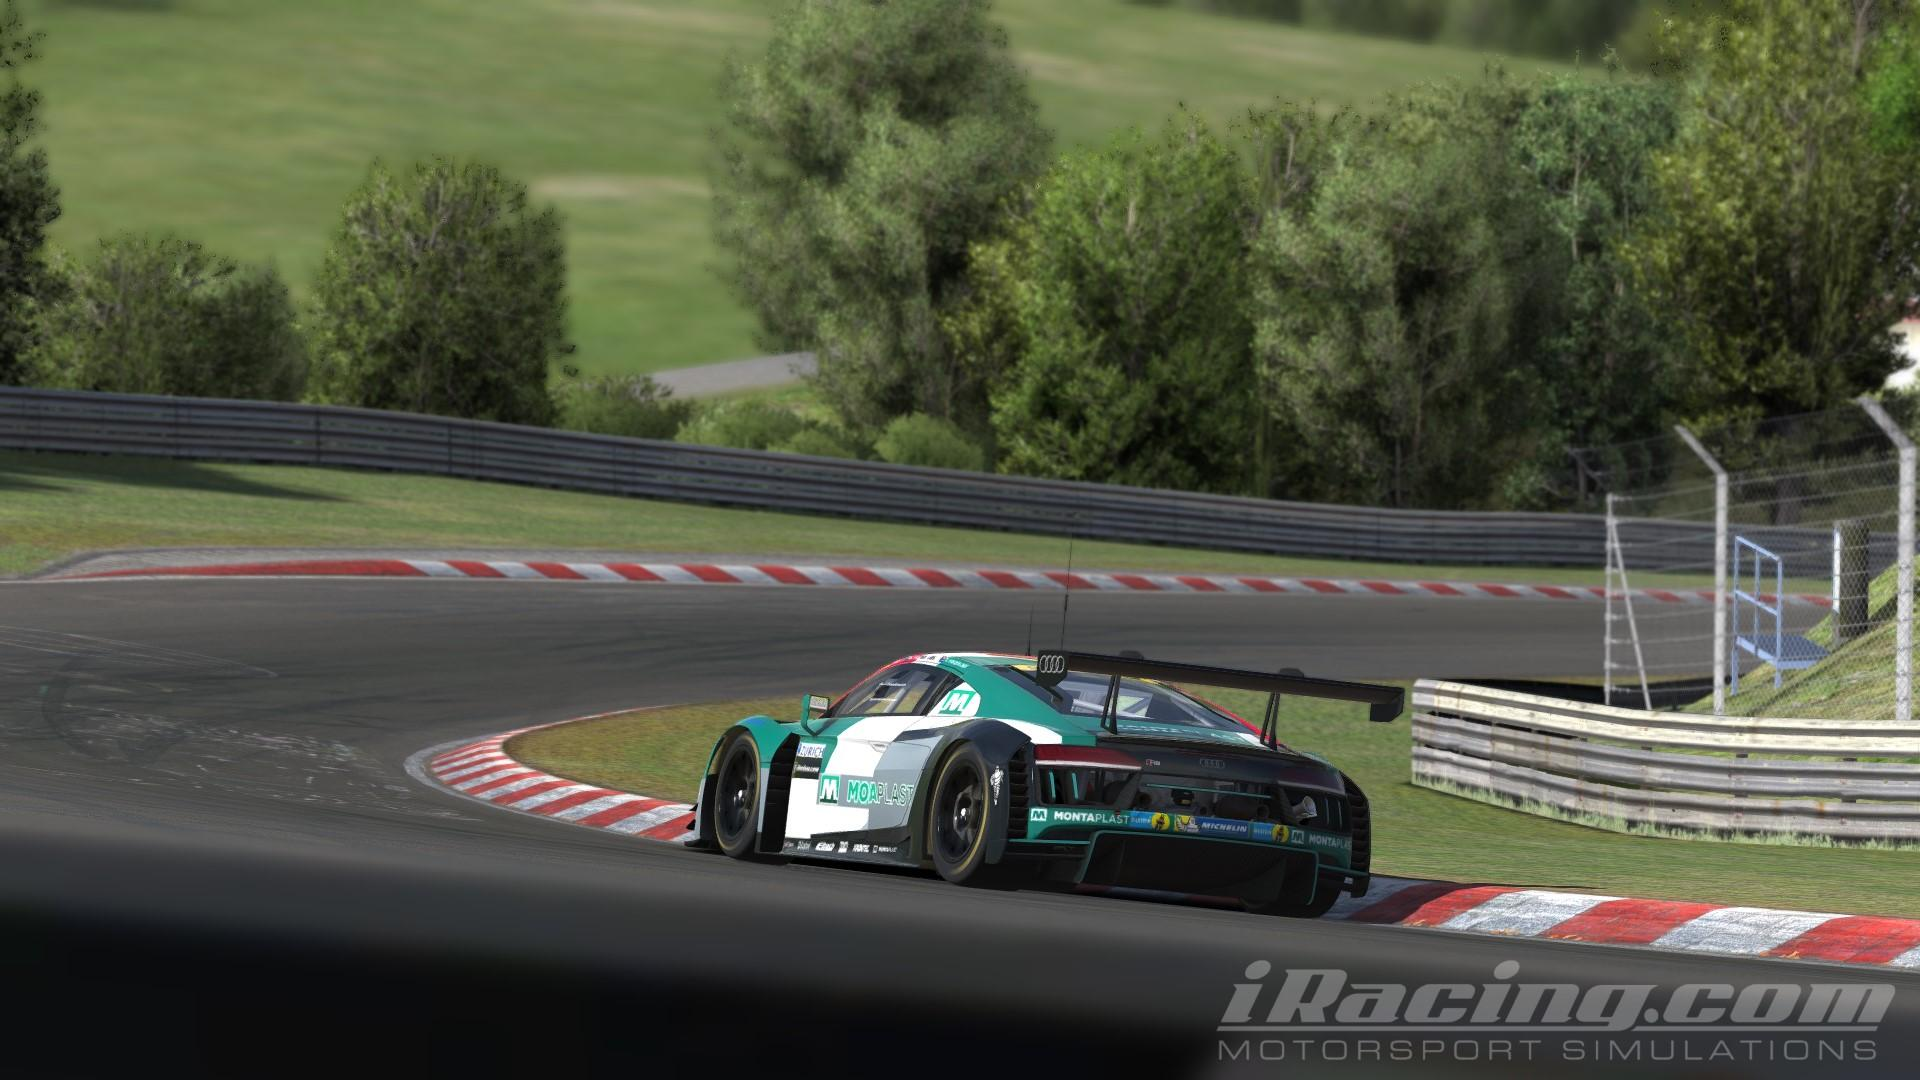 Preview of Land Motorsport - 24h Nürburgring 2018 by Christian Haas